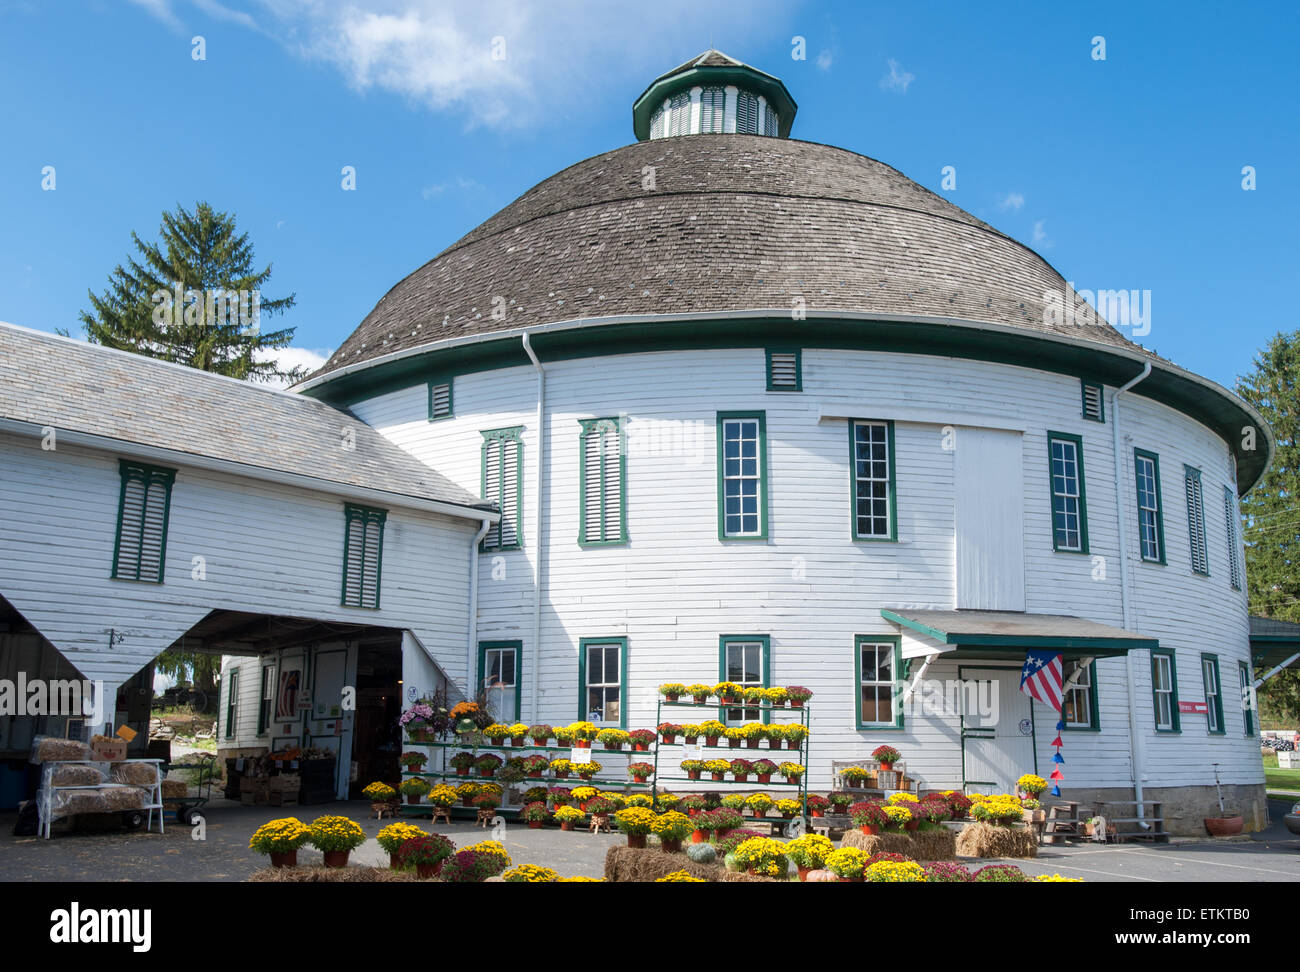 Mums for sale at the Round Barn in Cashtown, Pennsylvania, USA - Stock Image